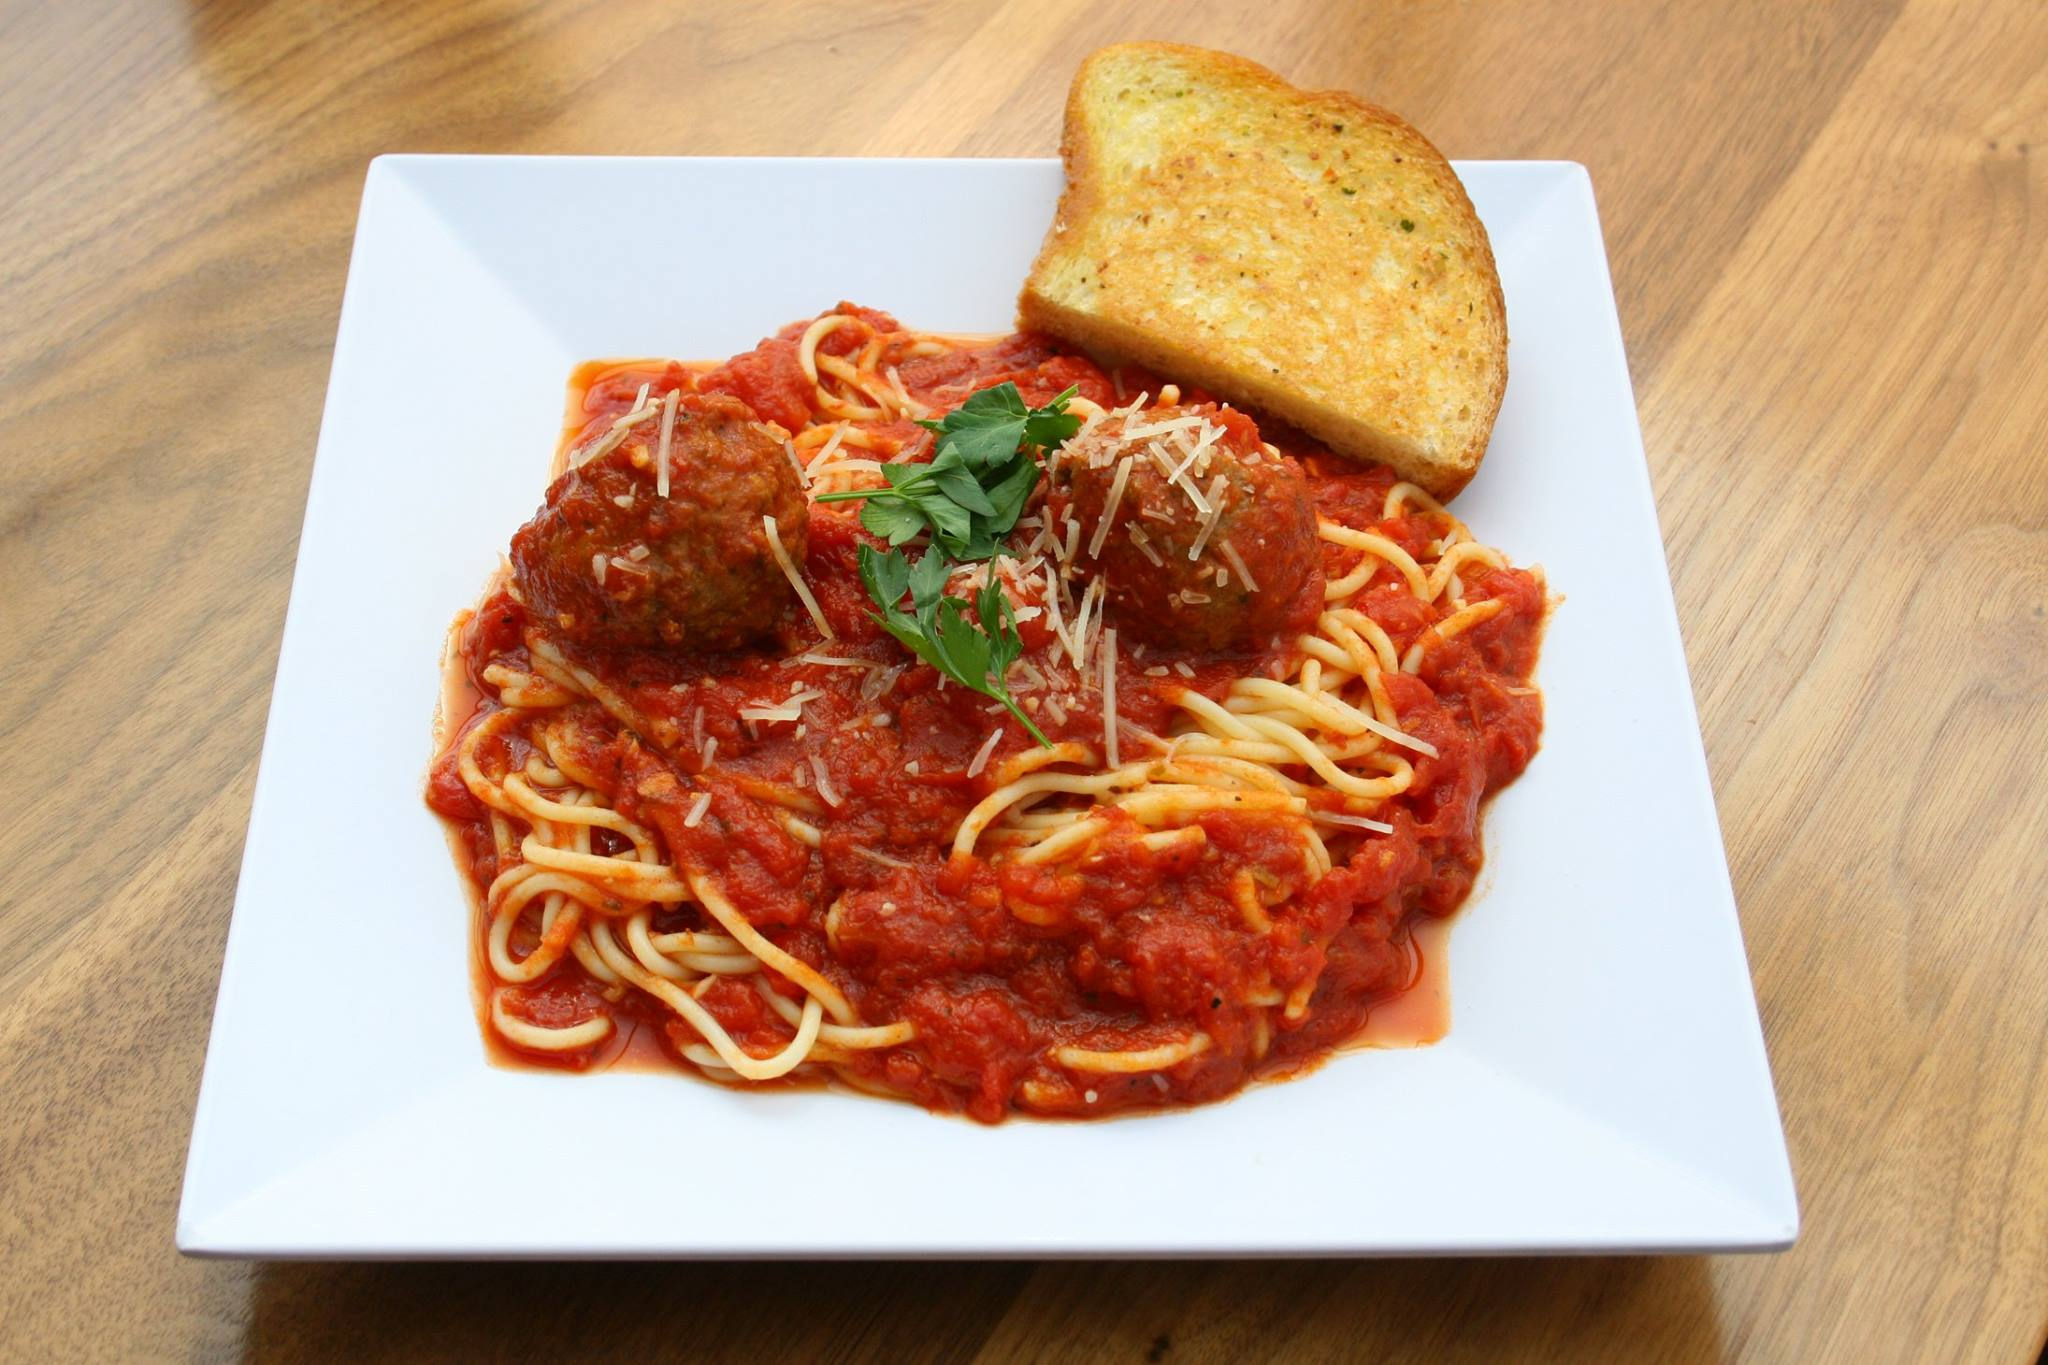 Spaghetti noodles in a rich tomato meat sauce with garlic and Italian ...